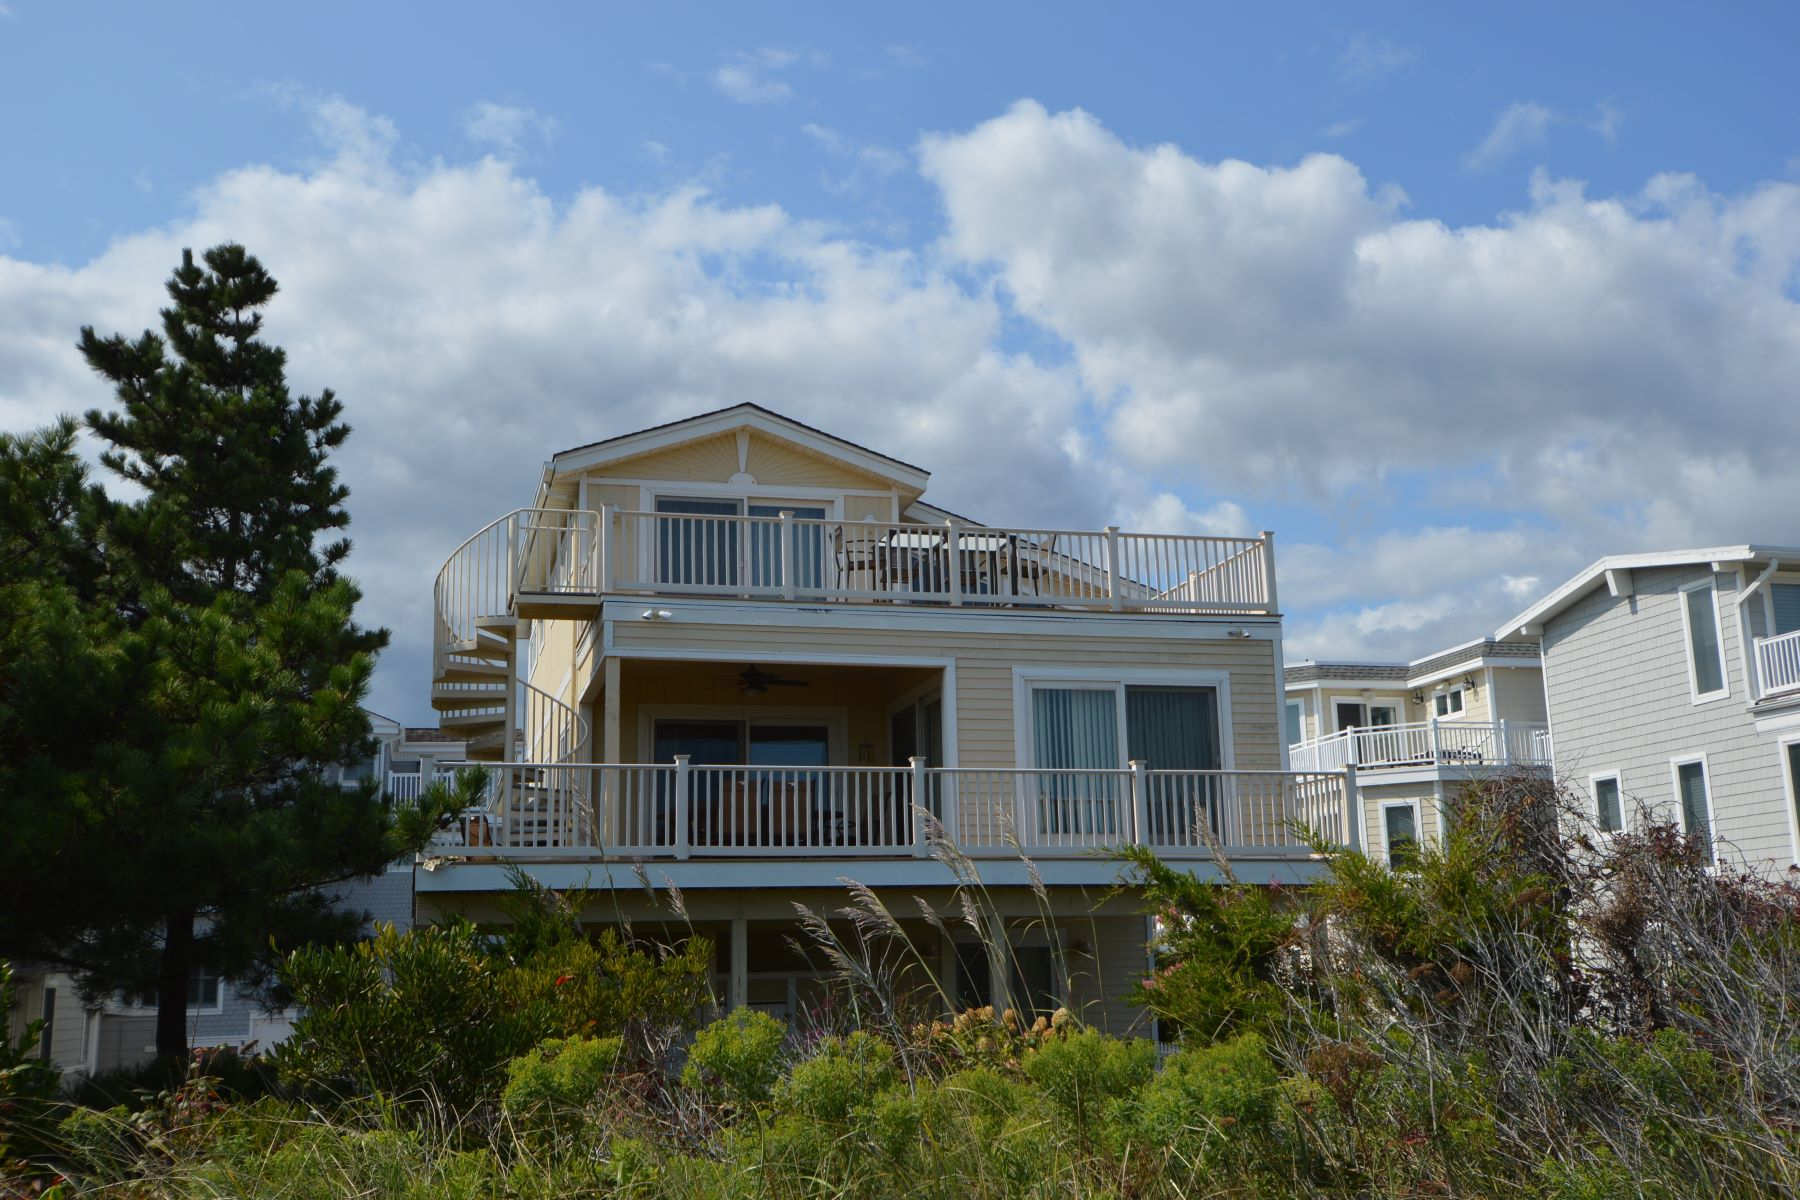 Single Family Home for Rent at Avalon, New Jersey 08202 United States